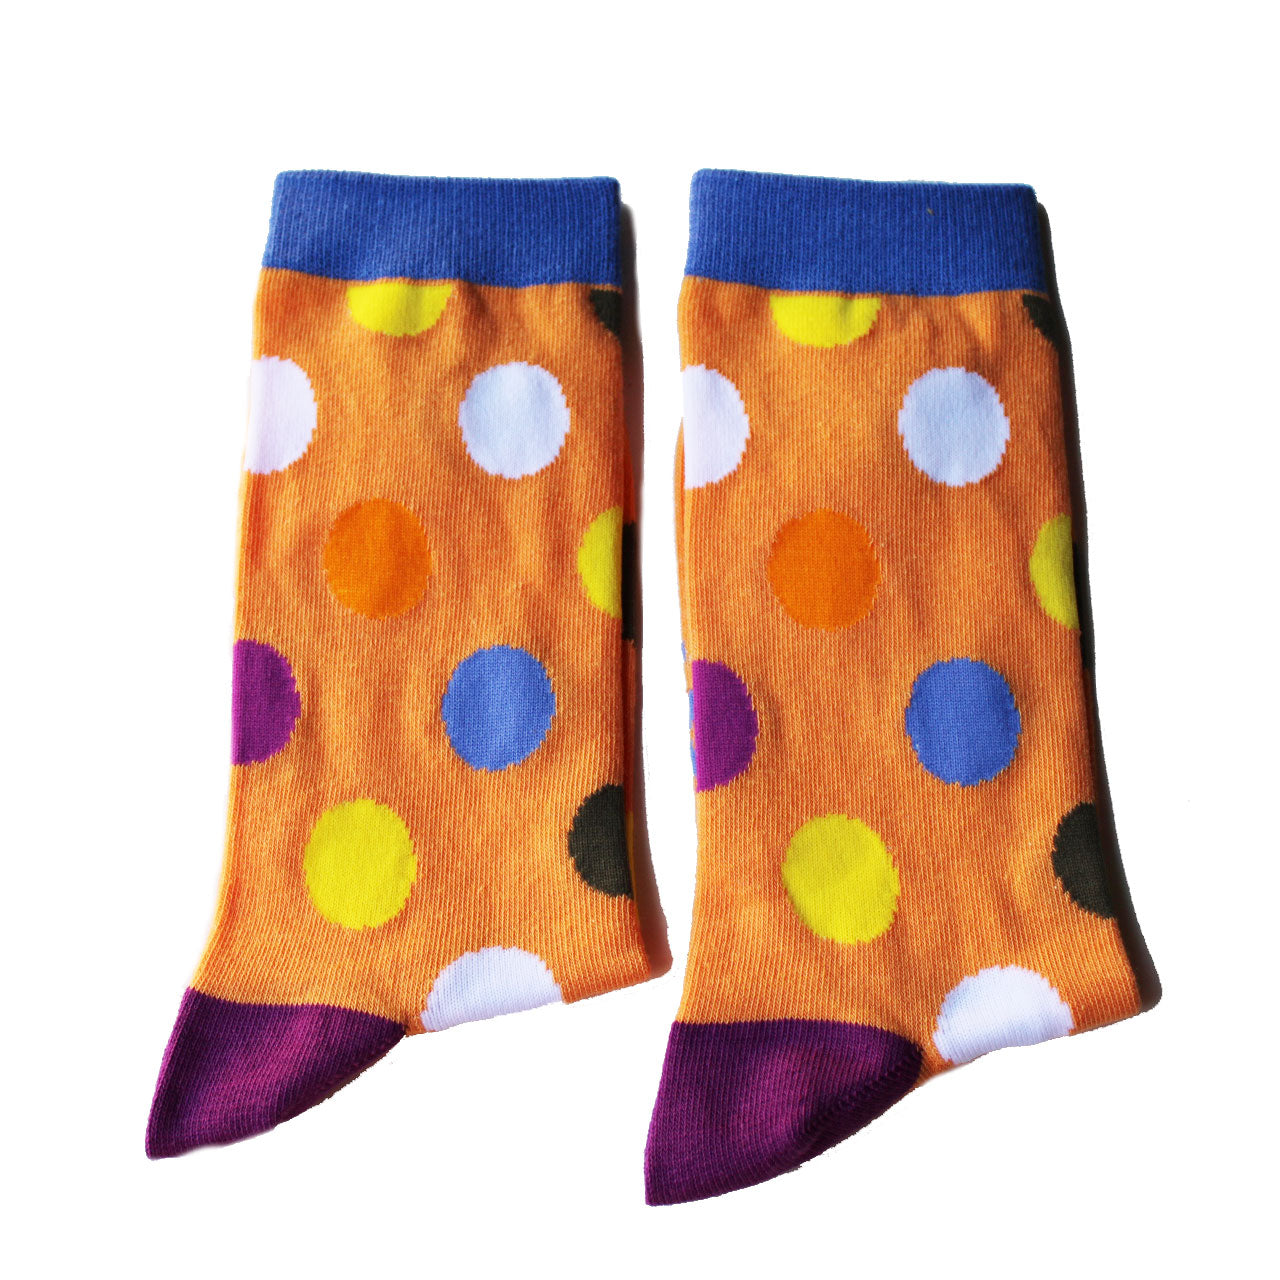 Orange socks with coloured dots, all sizes available